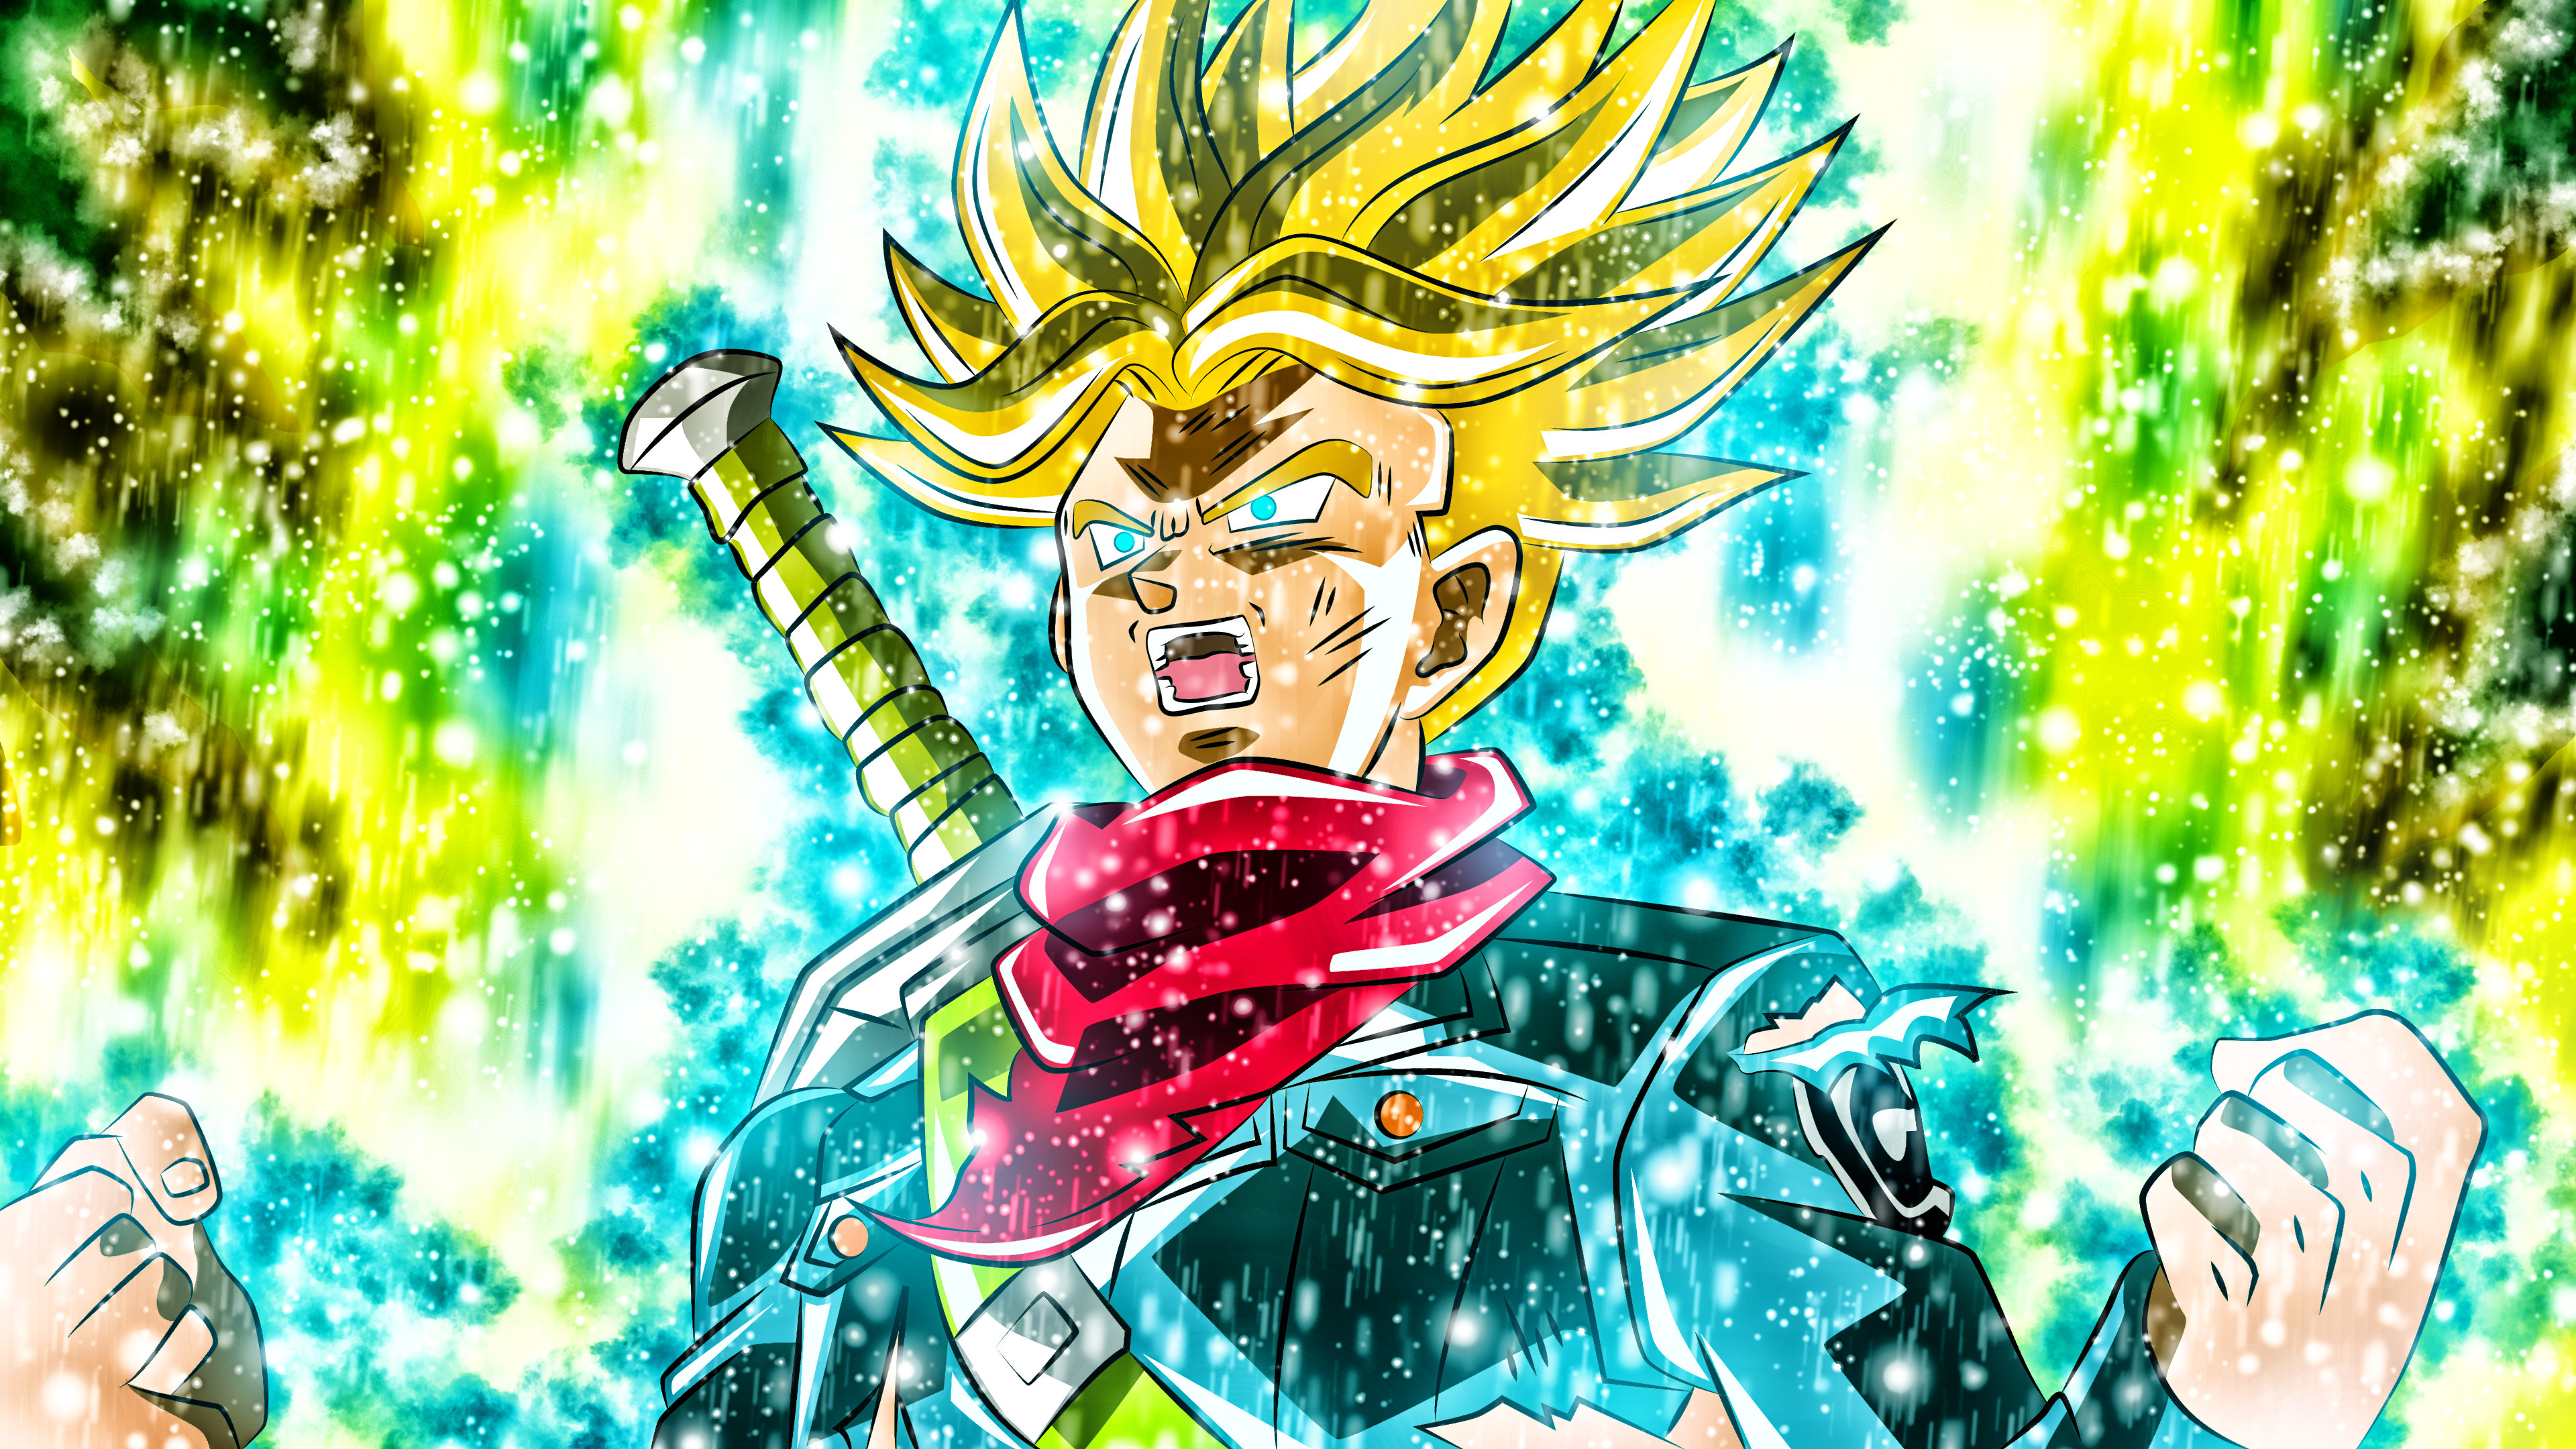 Future Trunks Wallpapers 66 Background Pictures Super Saiyan Rage Trunks 3840x2160 Download Hd Wallpaper Wallpapertip